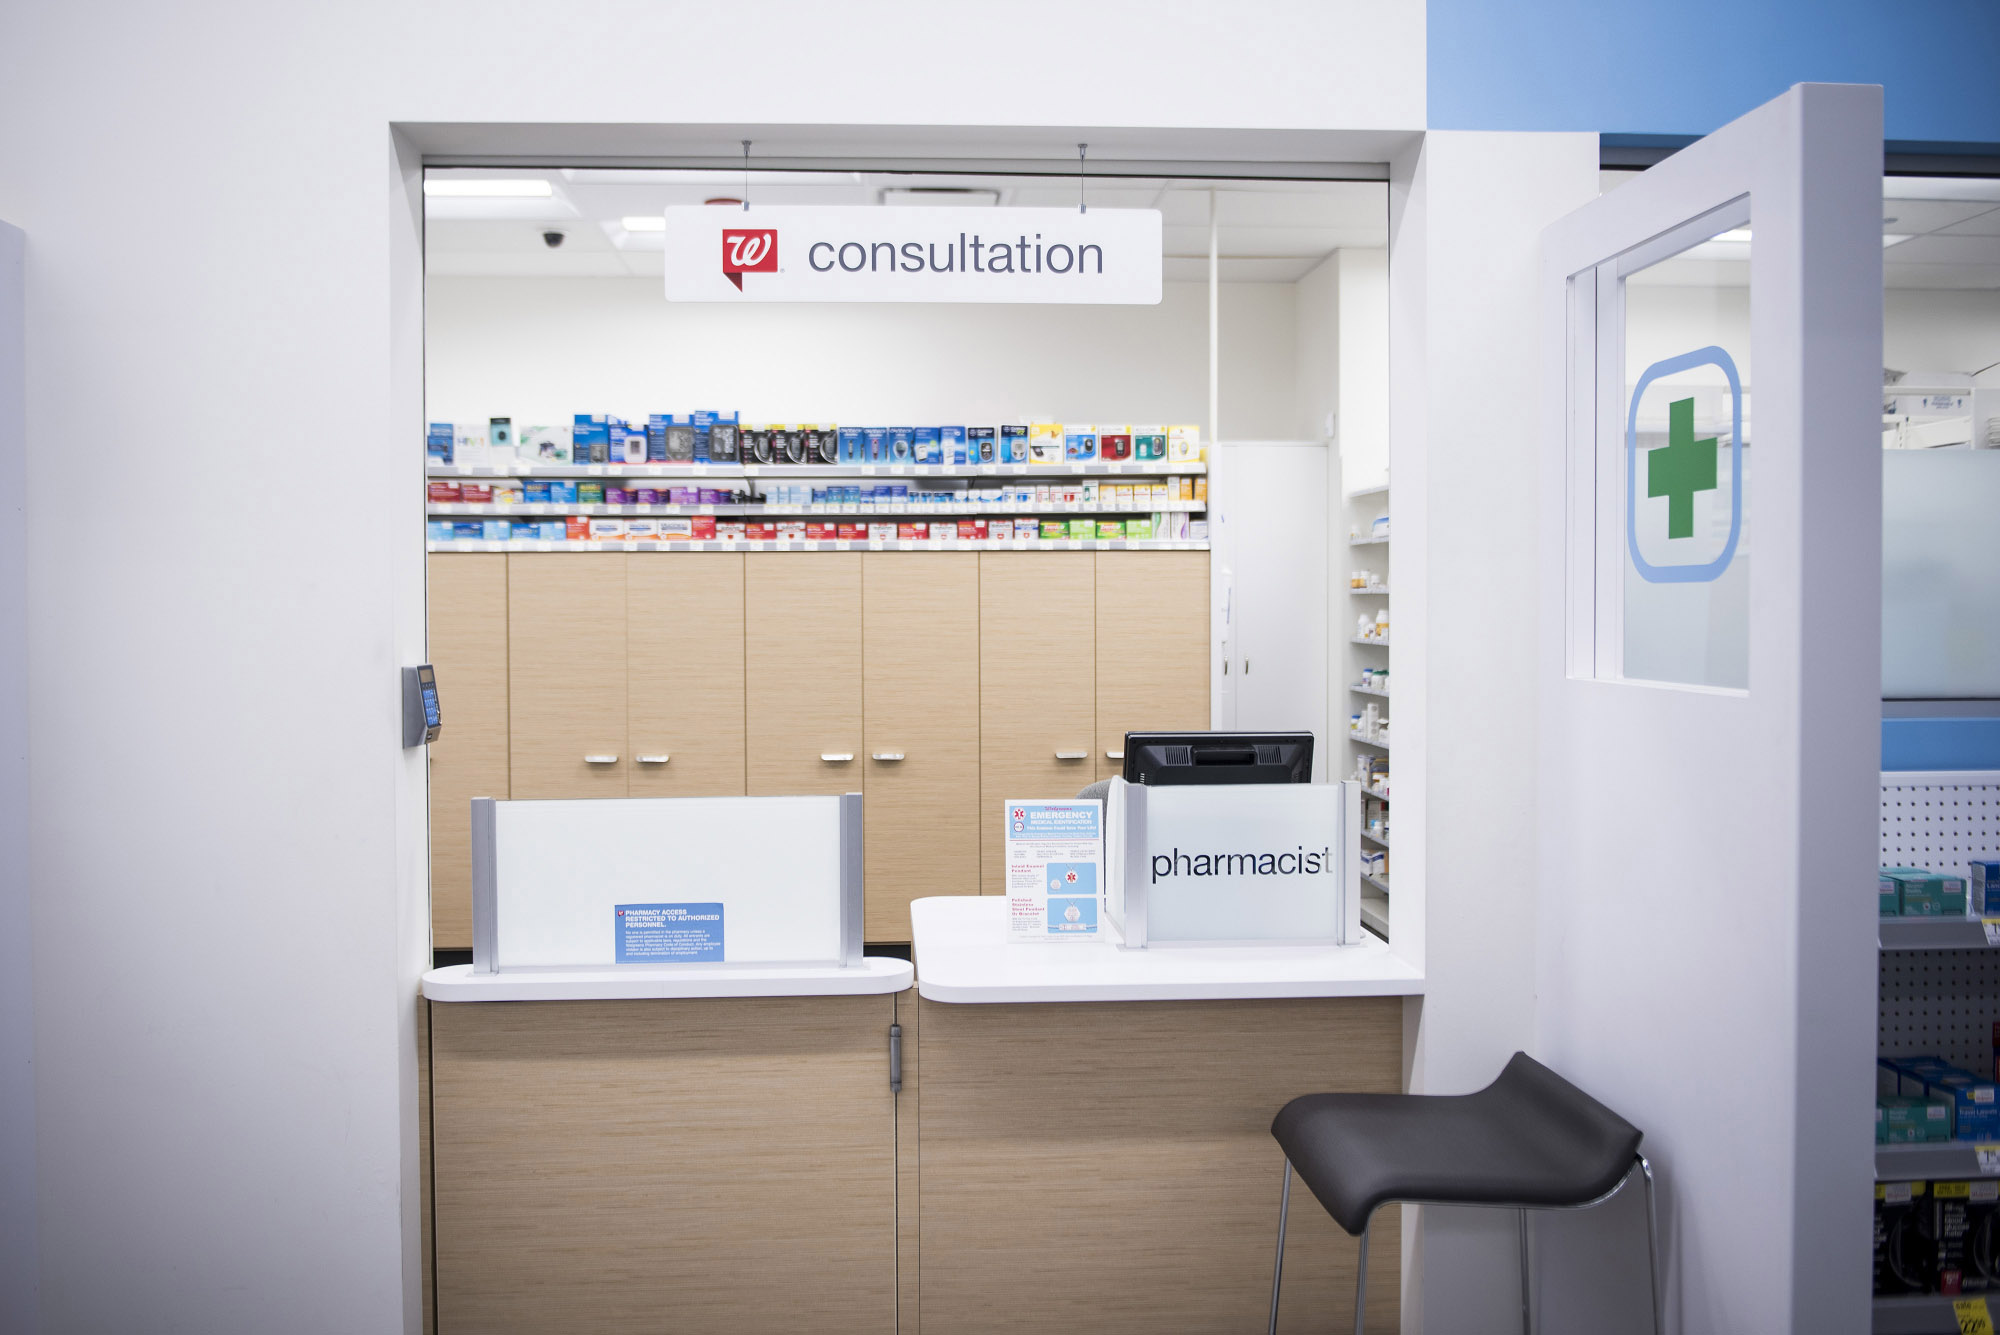 Walgreens beefs up pharmacist training after woman denied drug - The ...